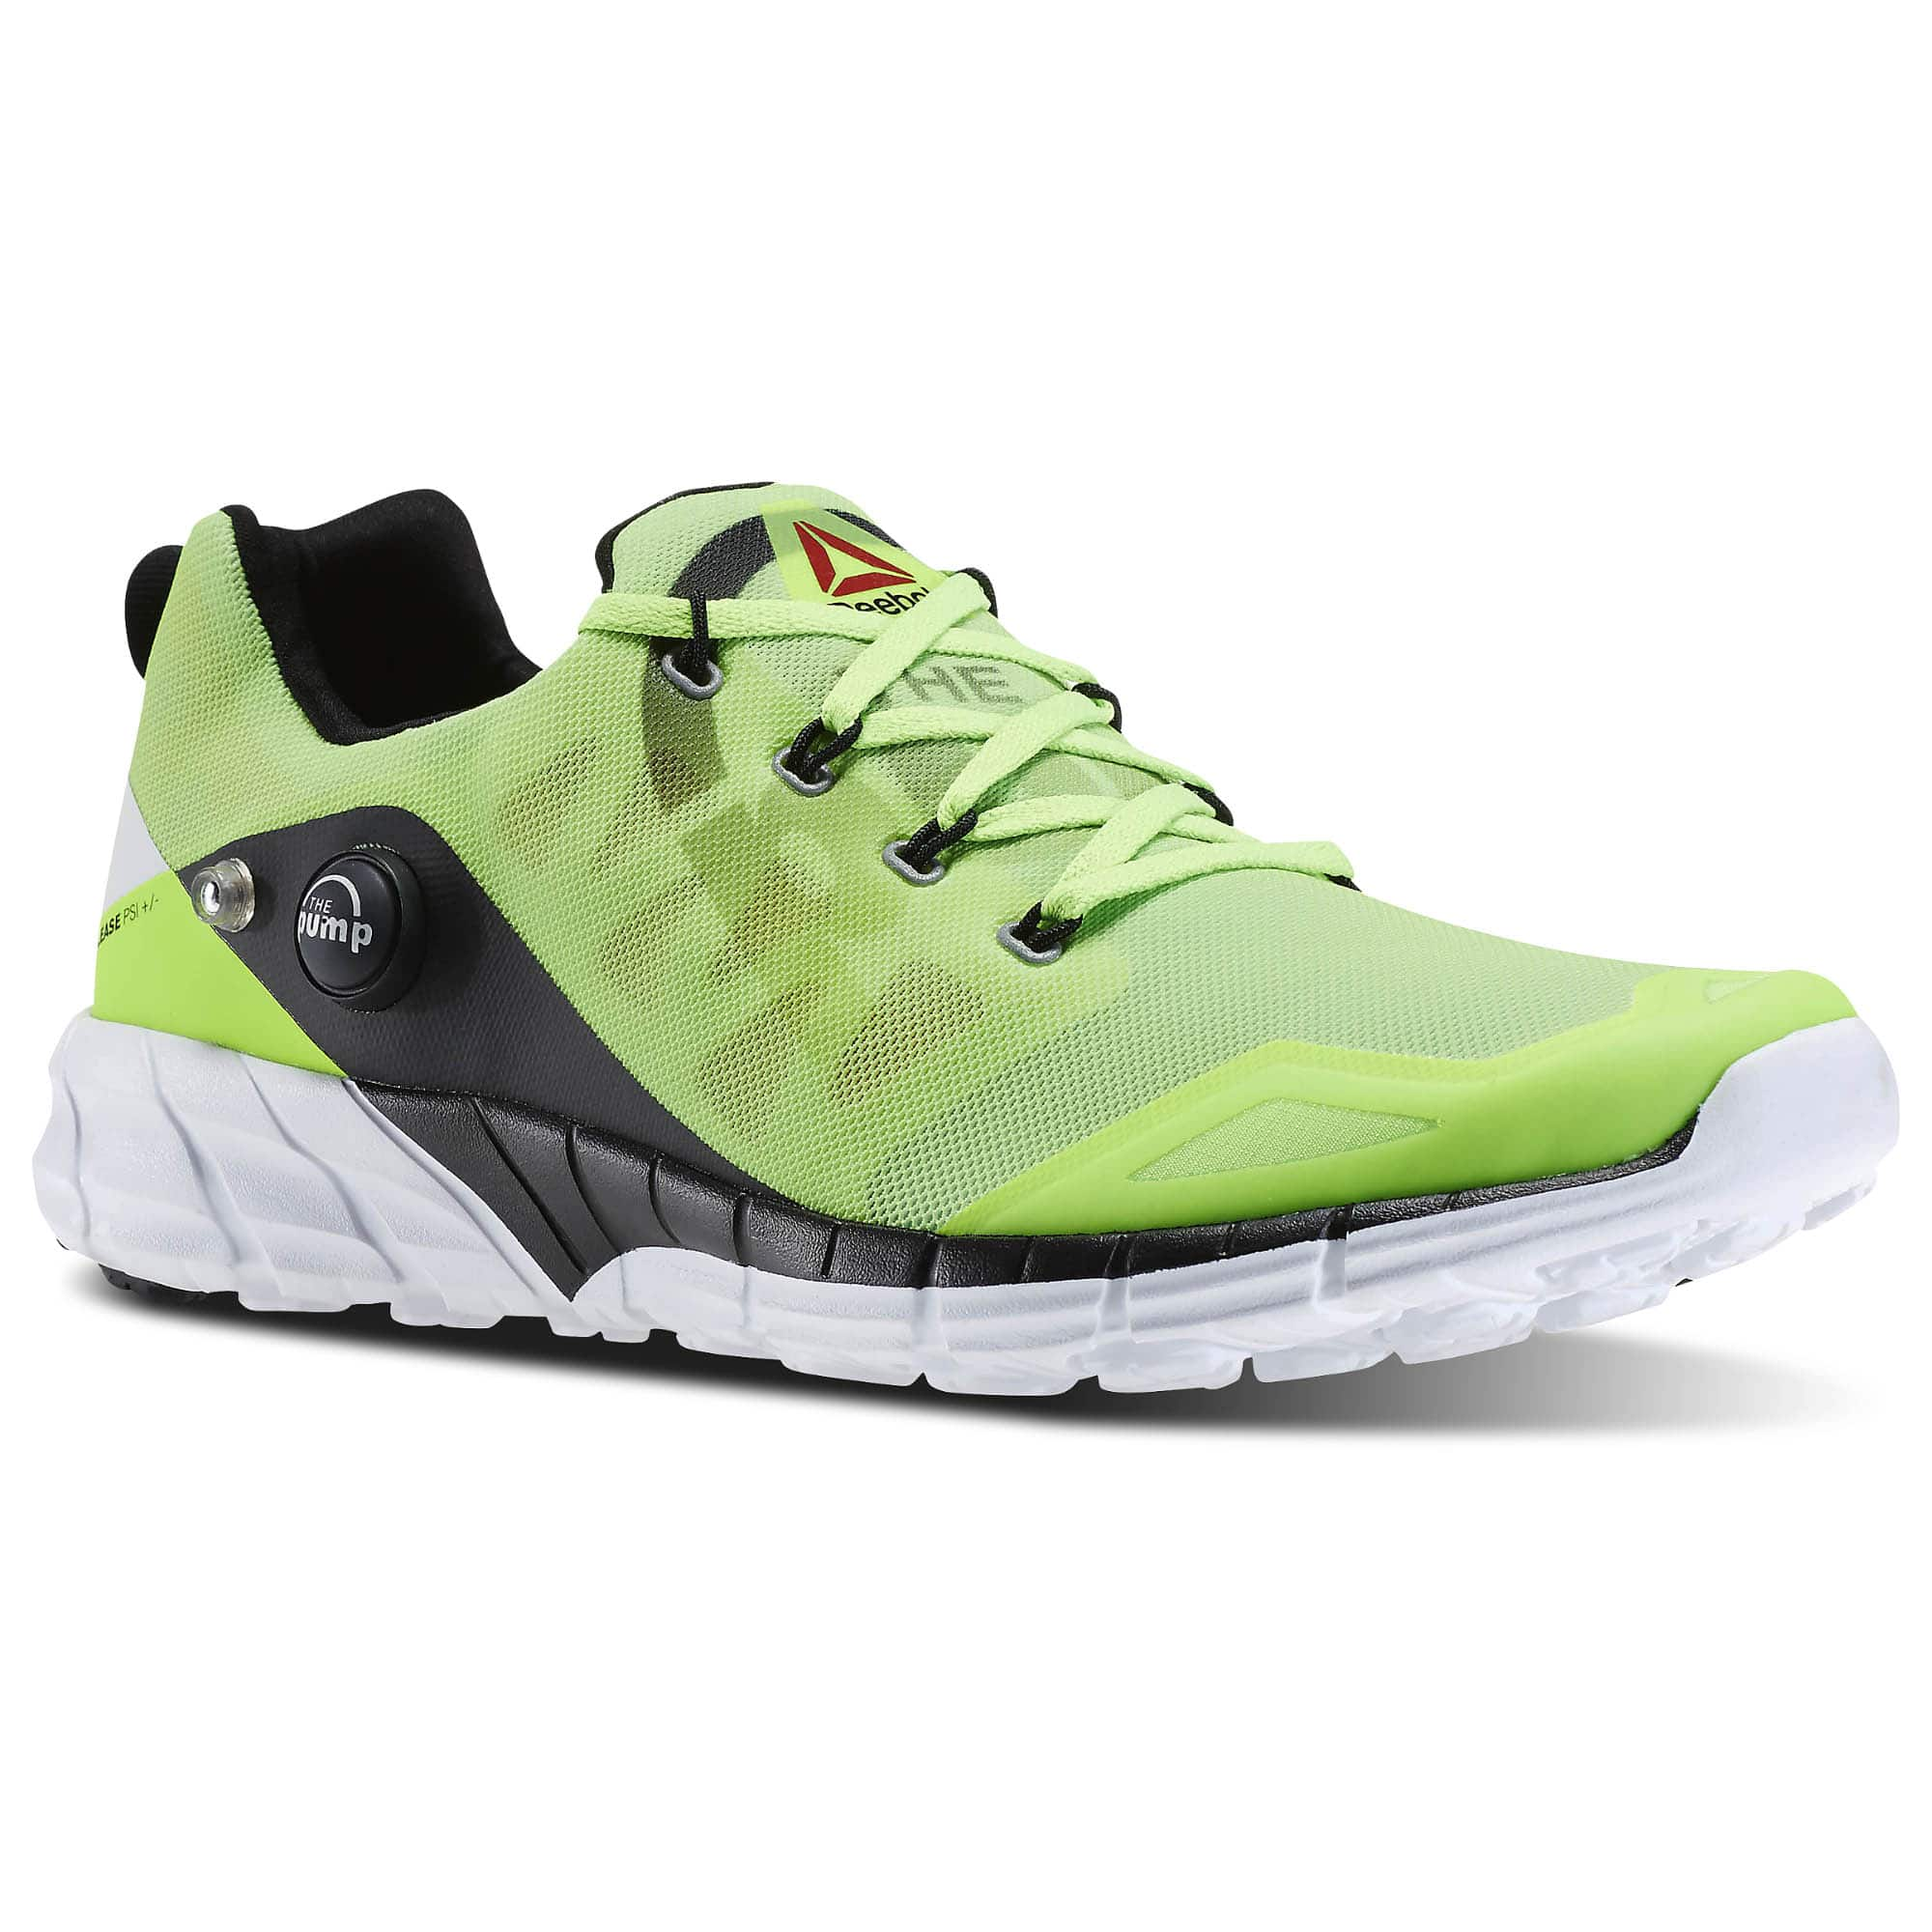 Reebok Outlet Coupon: Extra 40% off Sale: Men's ZPump Fusion 2.0  $42 & More + Free S&H w/ ShopRunner